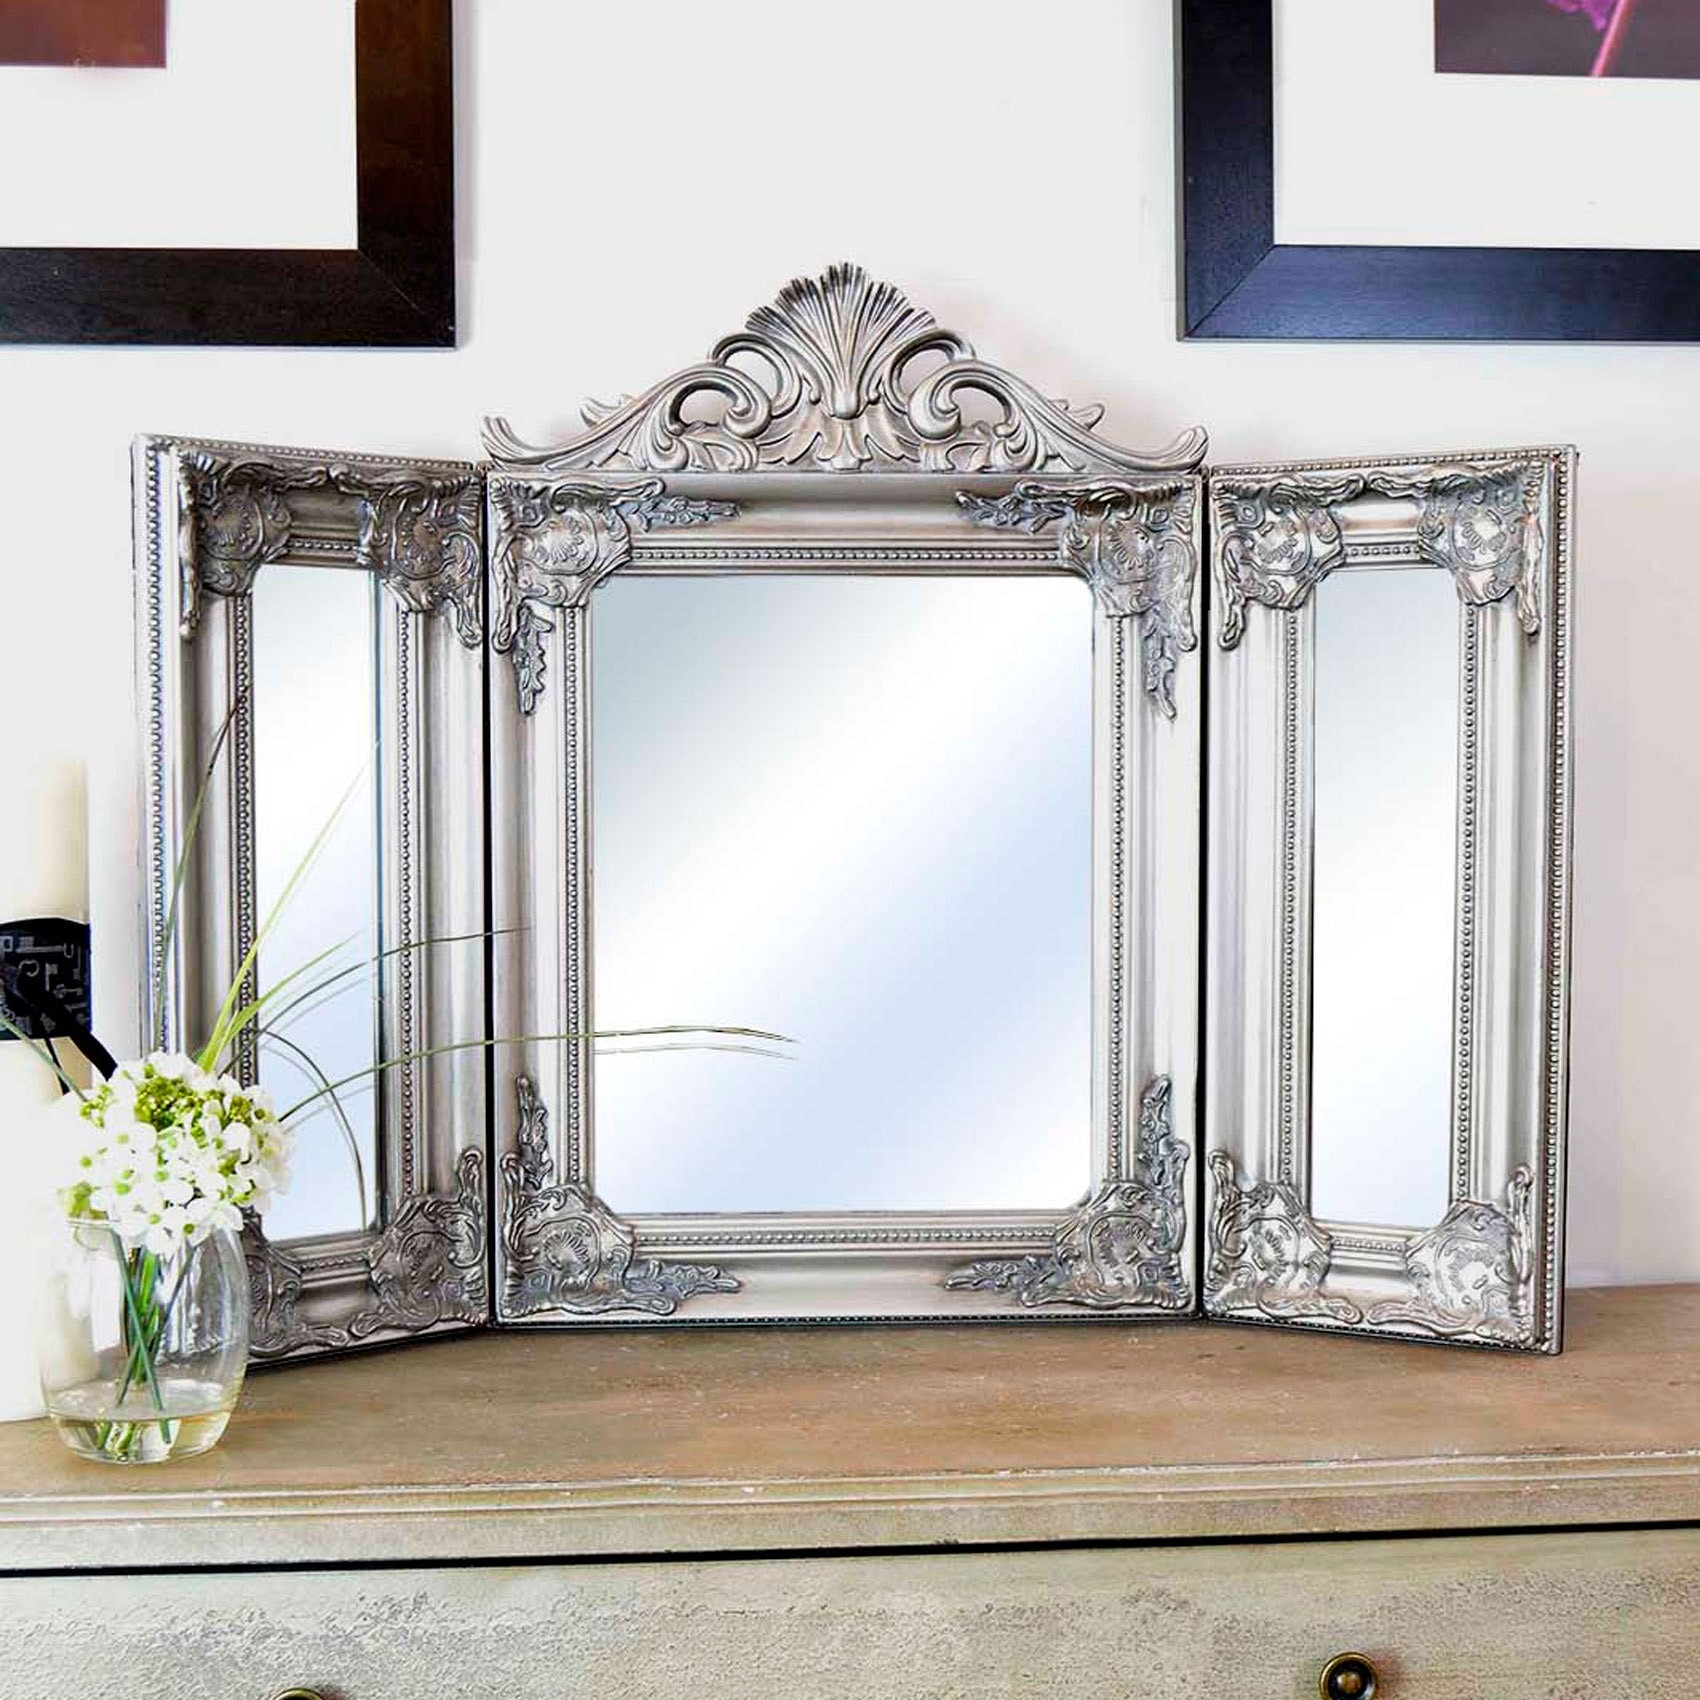 Elegant Silver Antique Free Standing Dressing Table Mirror Pertaining To Silver Dressing Table Mirror (Image 5 of 15)